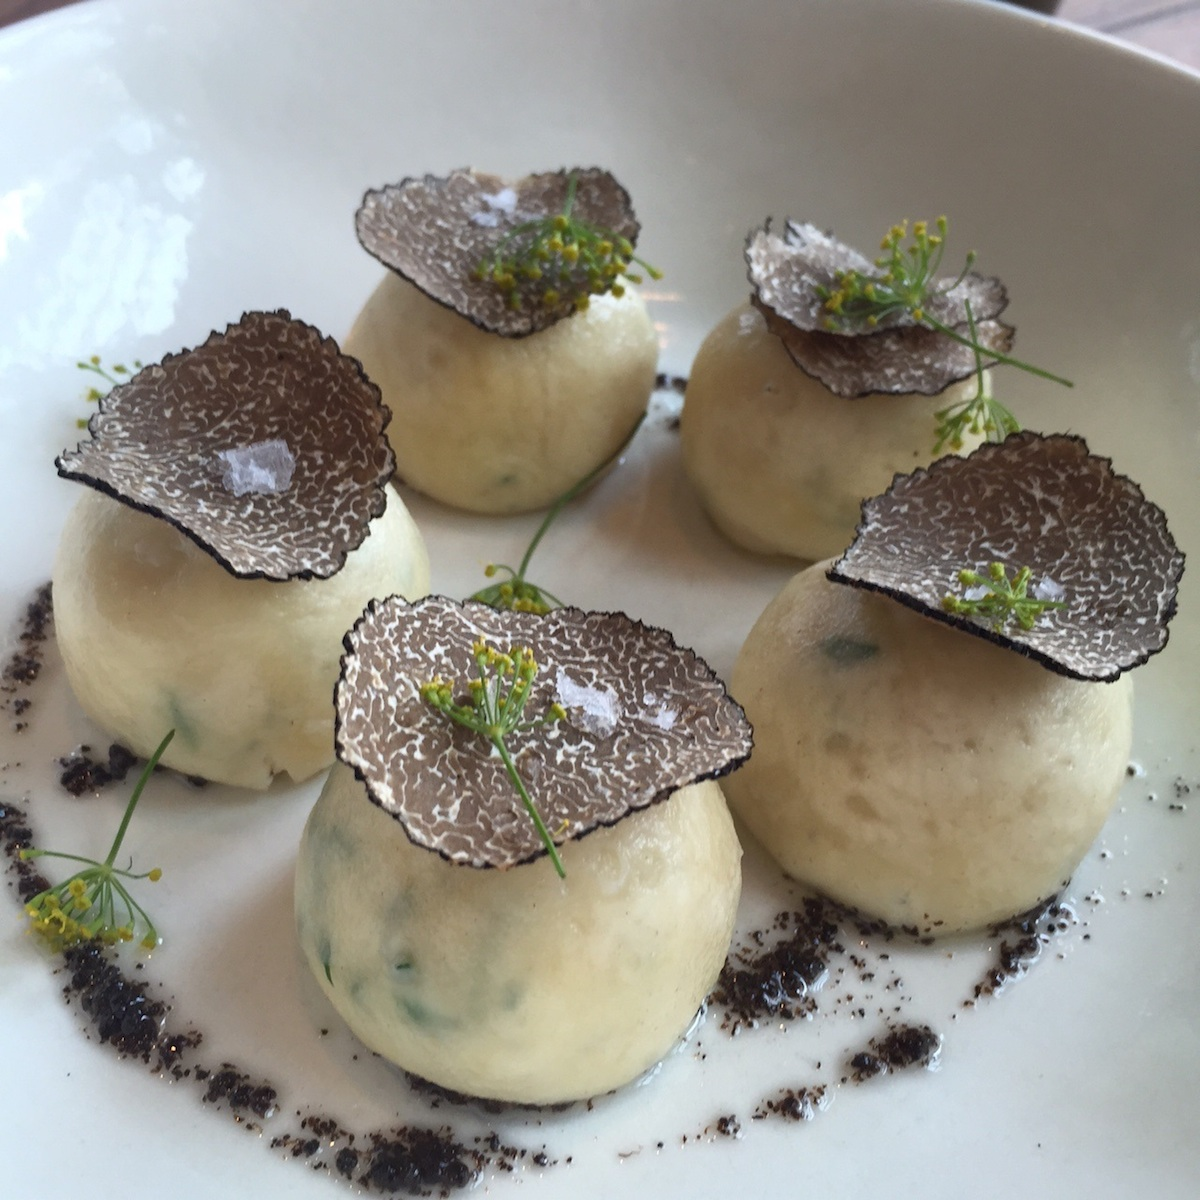 truffle dishes